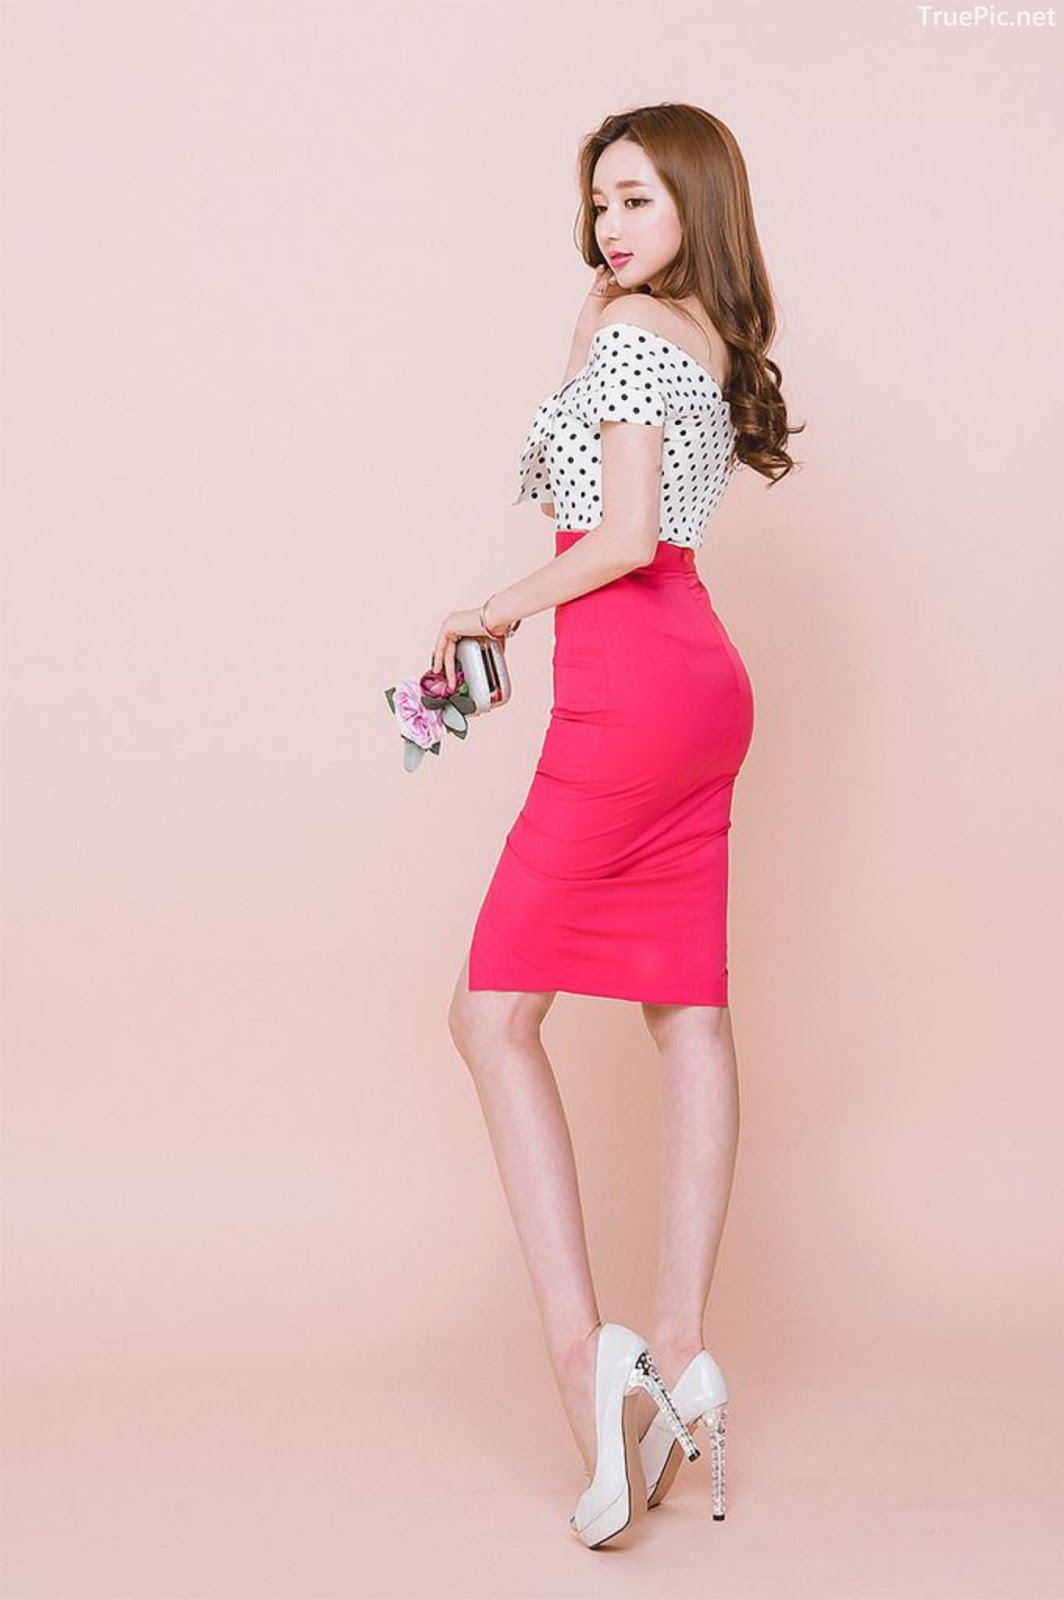 Lee Yeon Jeong - Indoor Photoshoot Collection - Korean fashion model - Part 4 - Picture 3